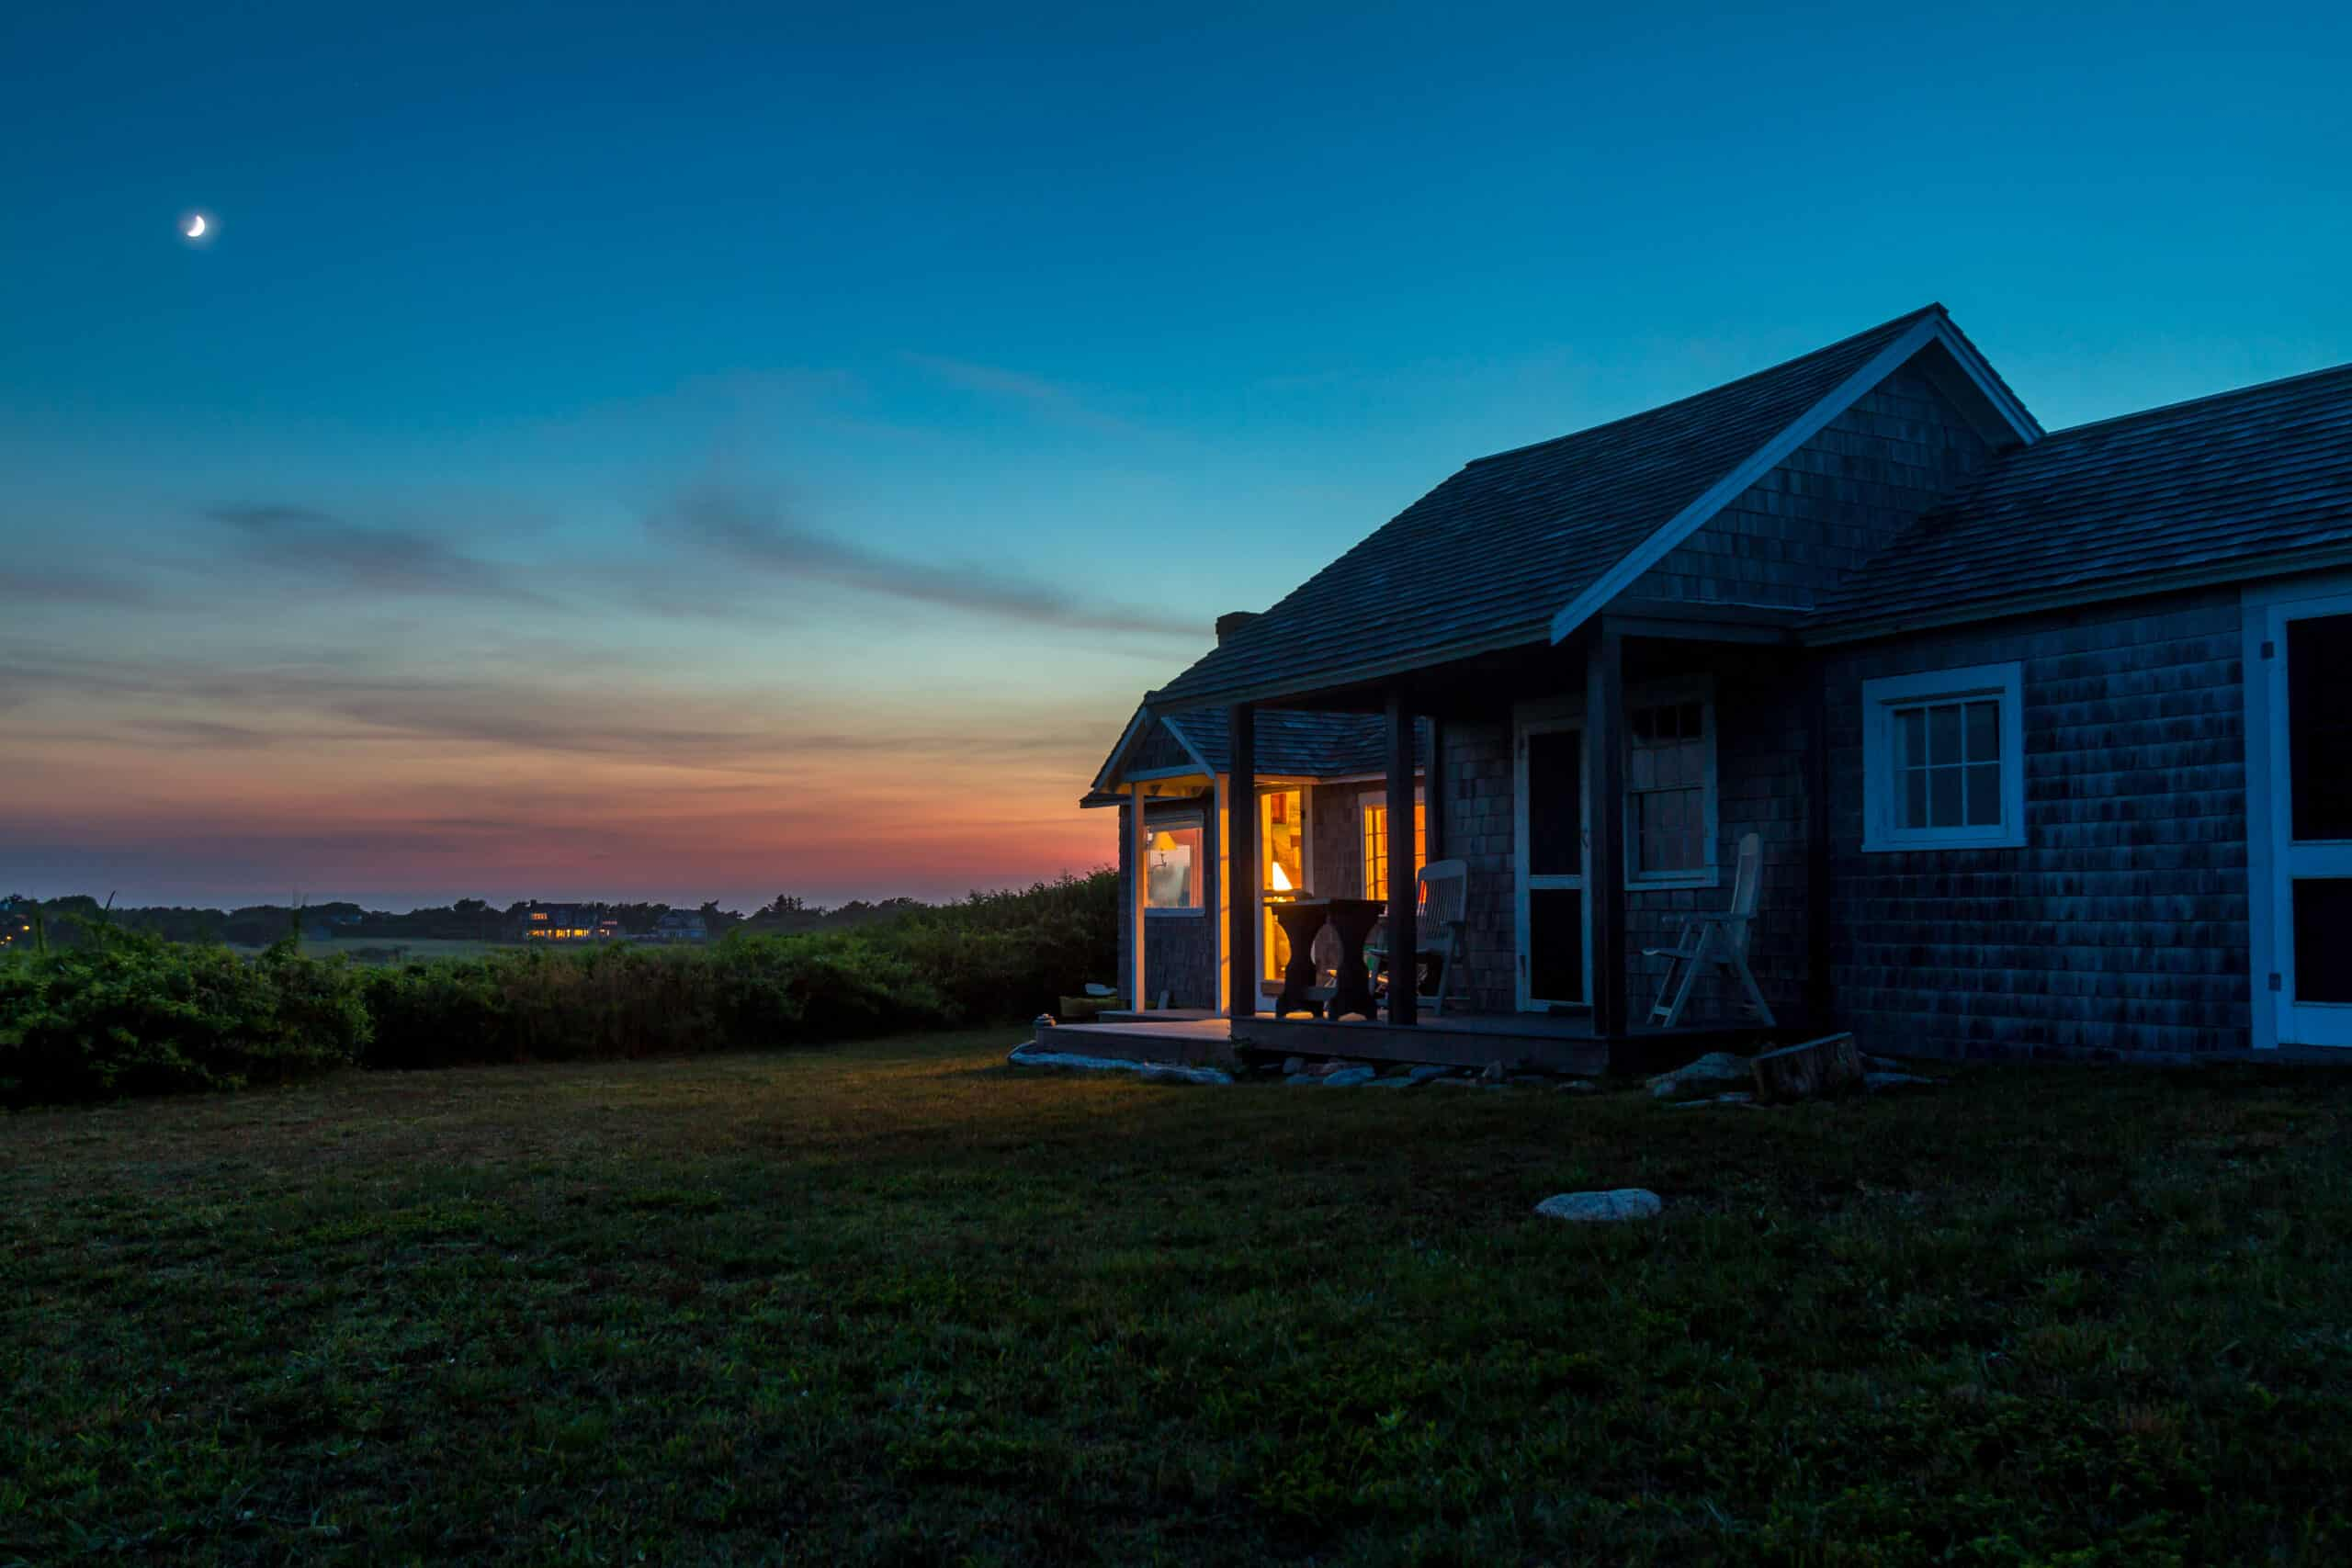 airbnb provincetown ma - classic new england cottage during a dark sunset on the coast